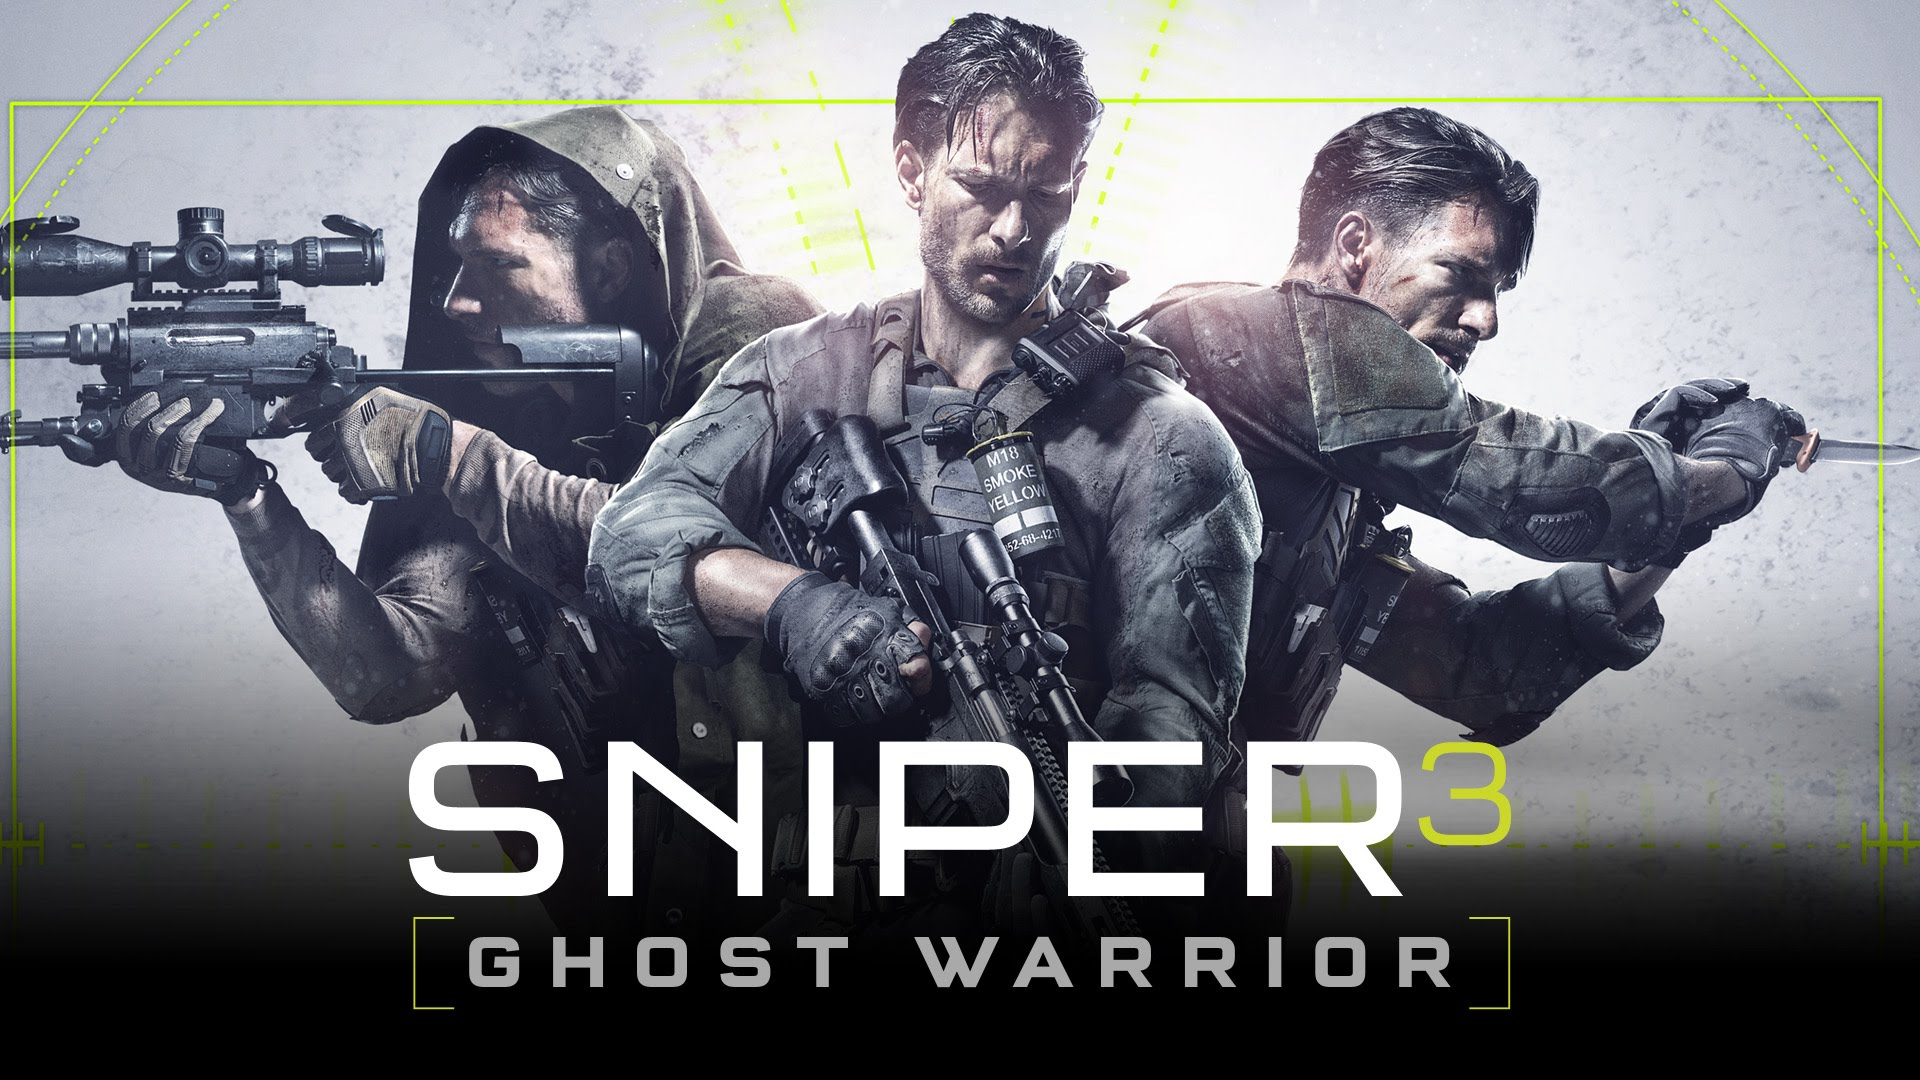 Review - Sniper Ghost Warrior 3 (Xbox One)